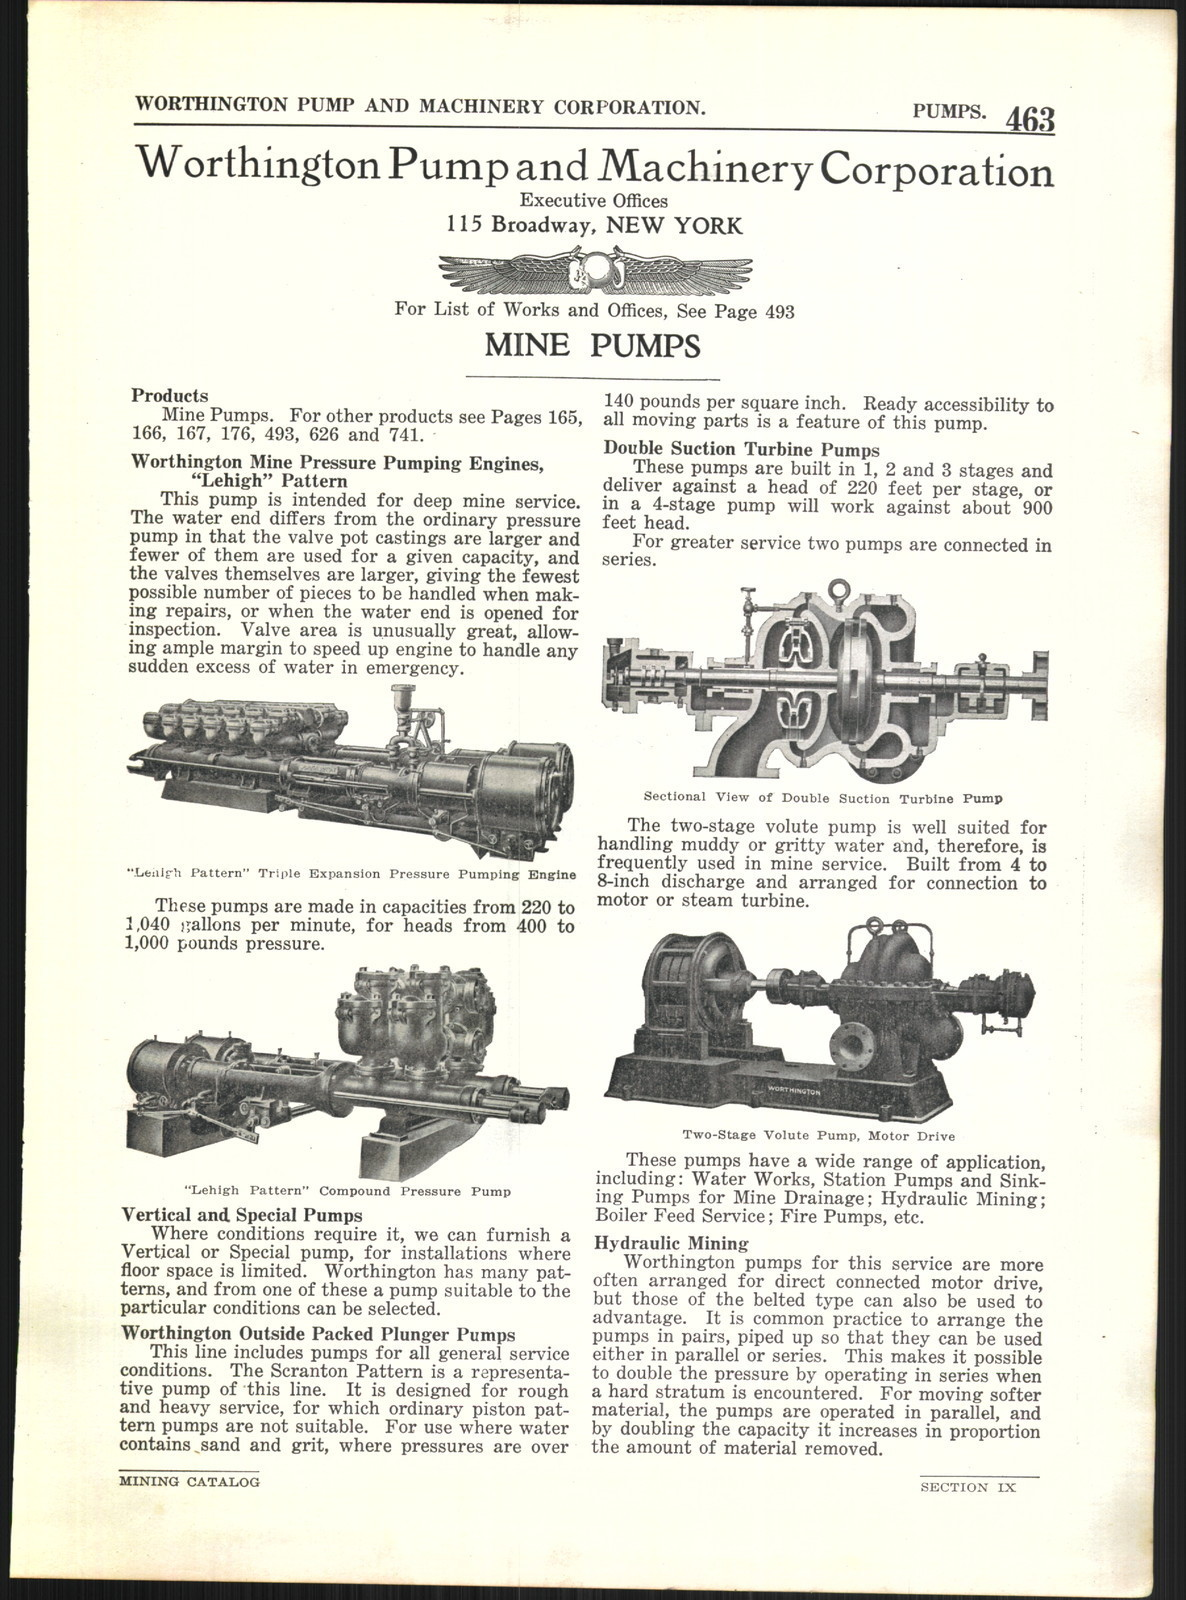 File:1922 AD Worthington Pump and Machinery Corporation Mine Pumps